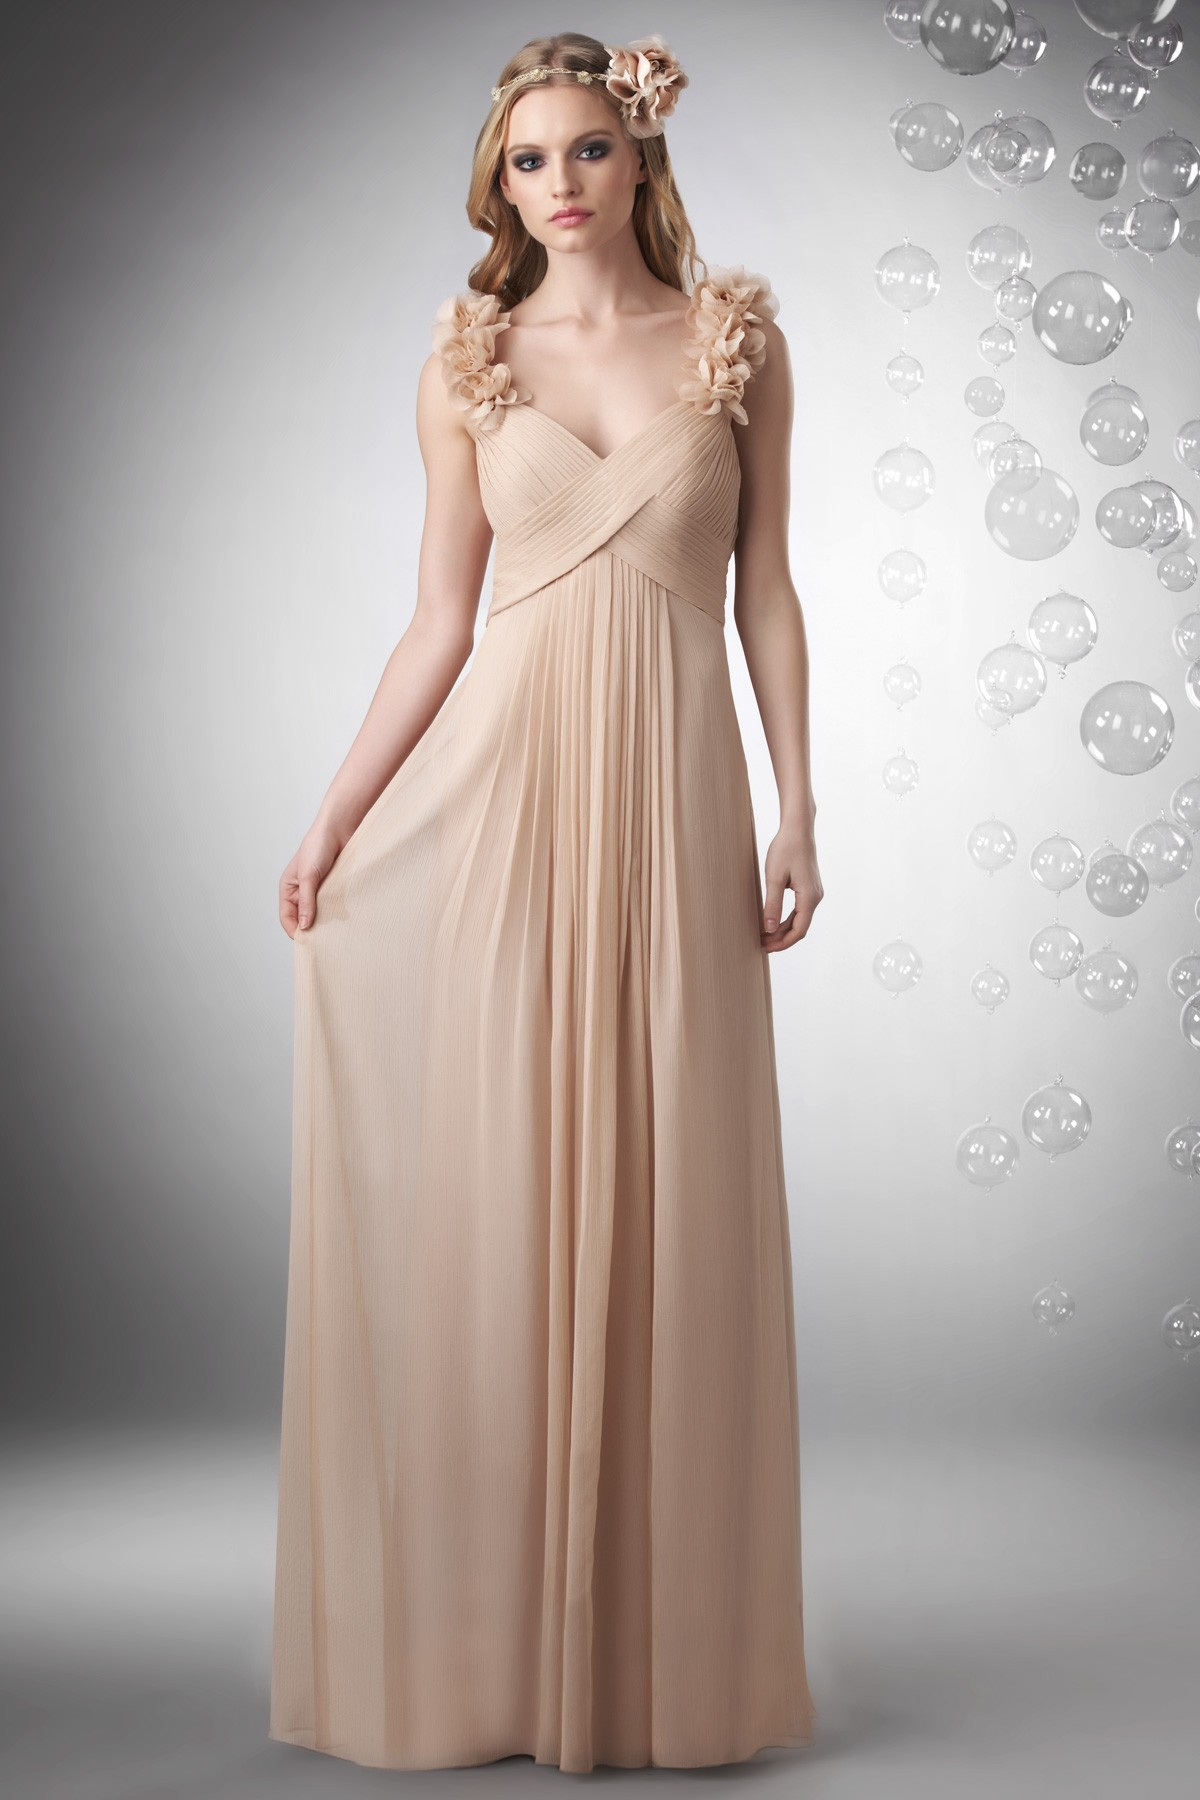 Champagne Chiffon Bridesmaid Dresses